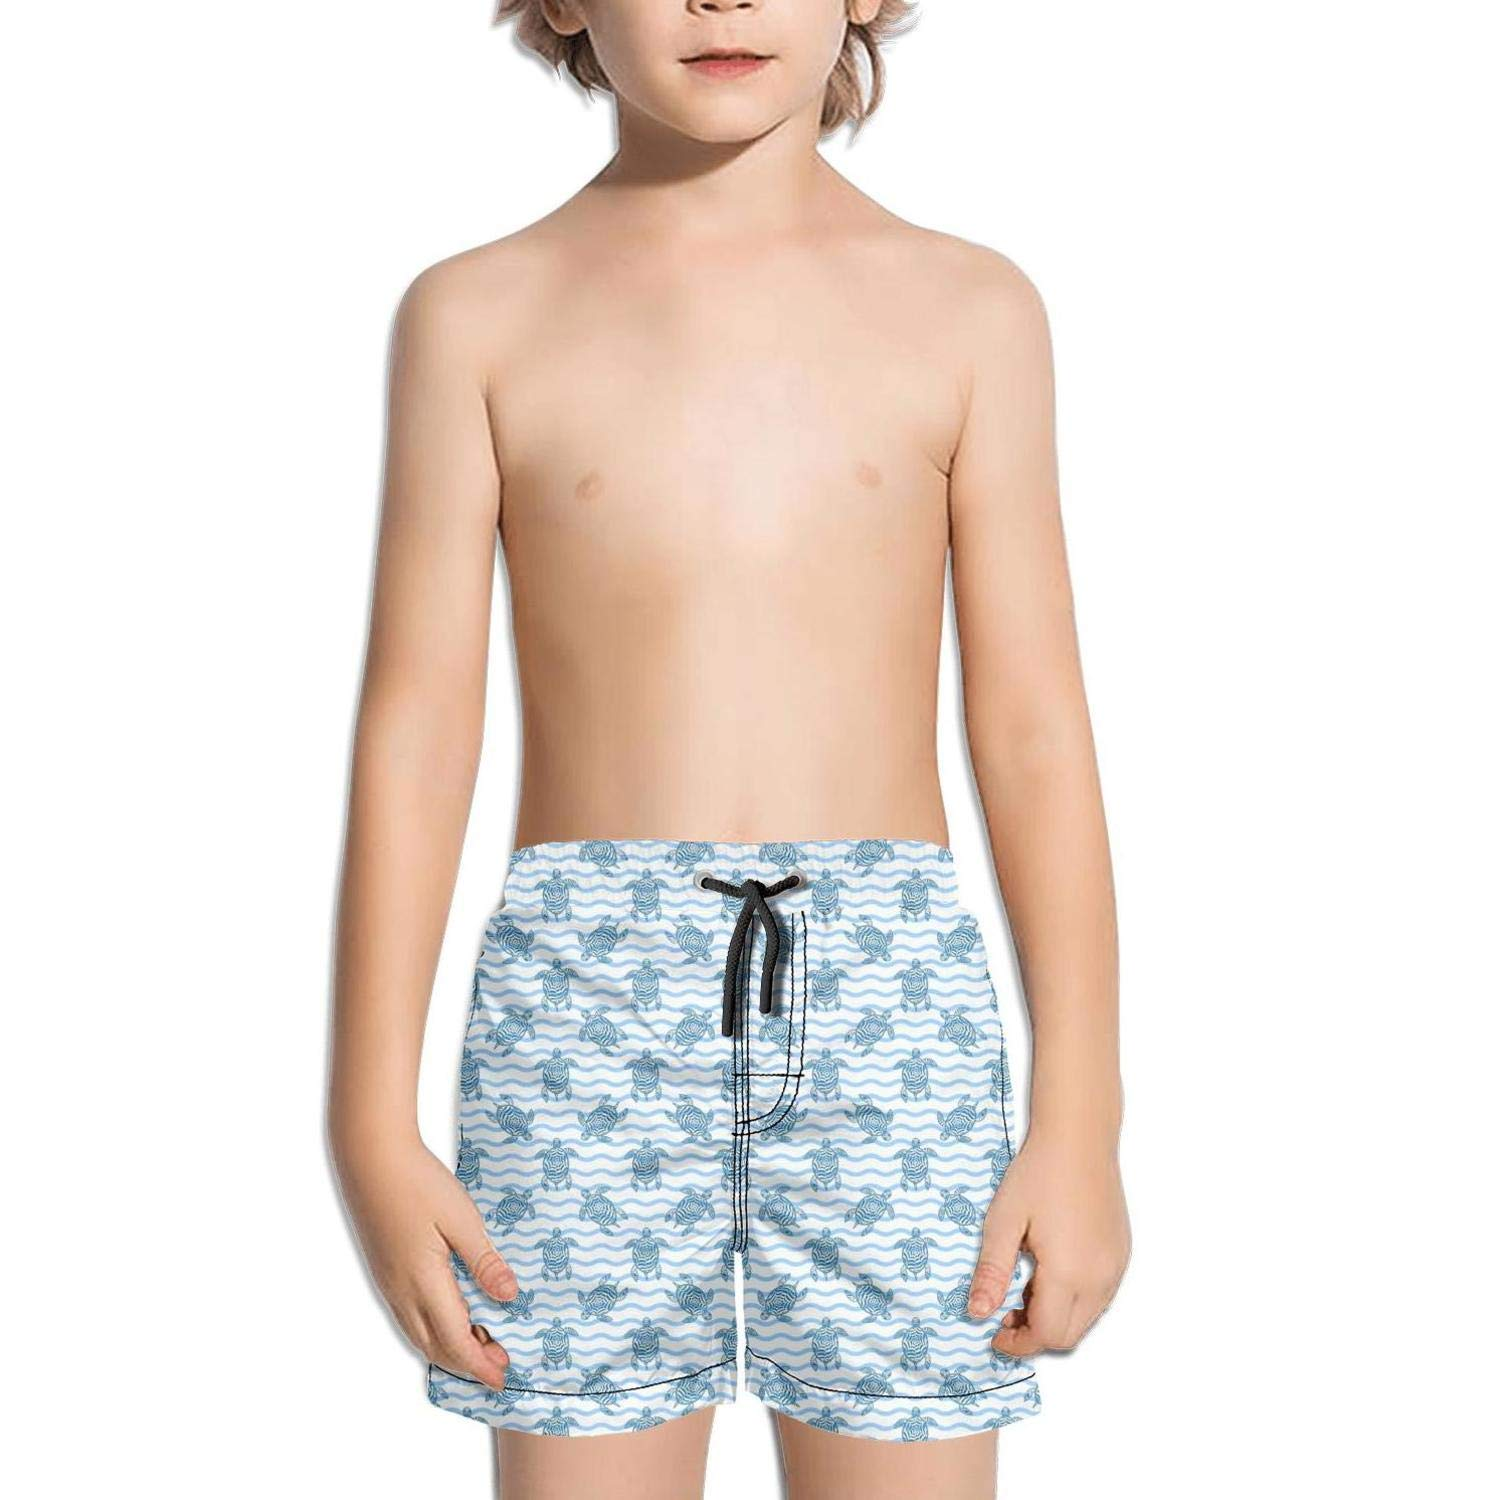 NAIT.2 Shorts Swimming Tucks for Kid Quick Dry Beach Sporty Swimming Tucks Effect Swimming Suits Hawaiian Turtle in Sea